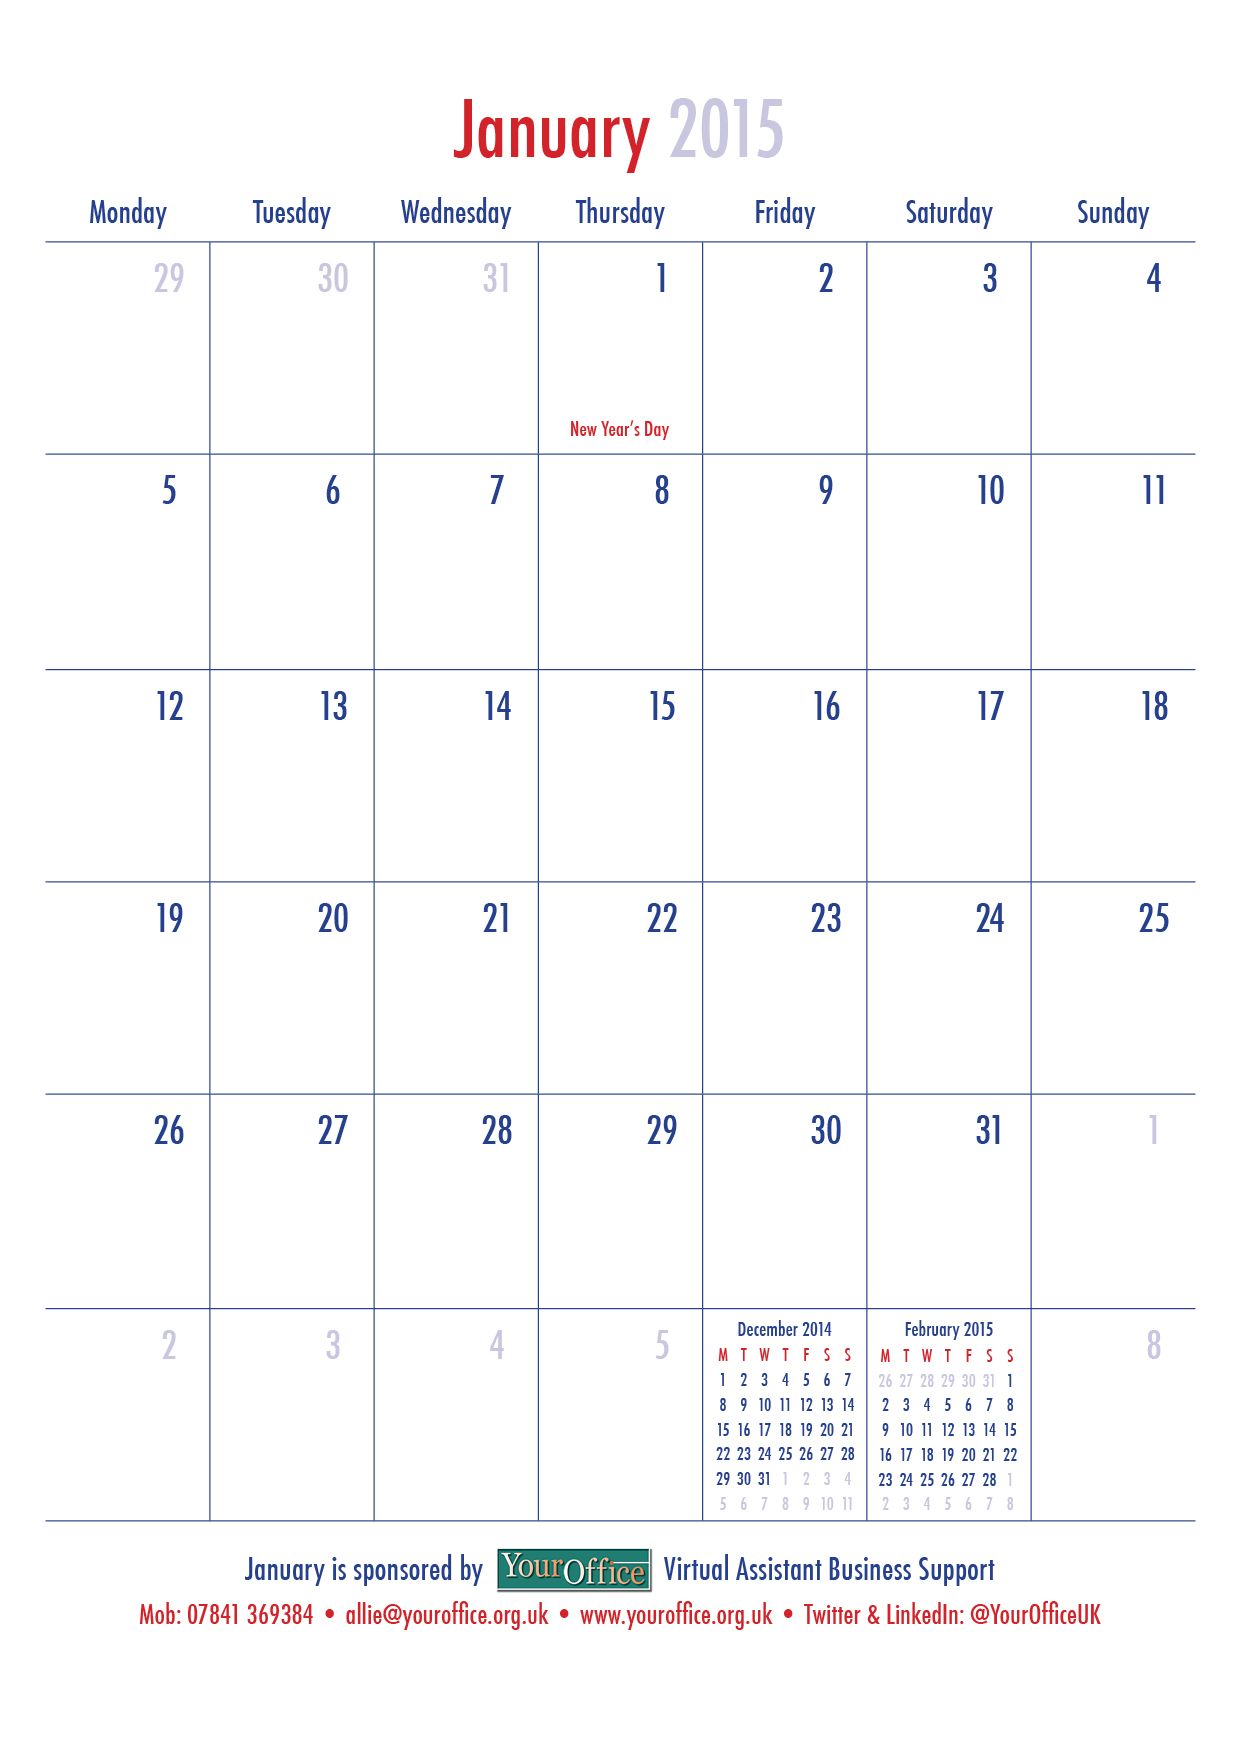 KCD Radcliffe Calendar_Your Office